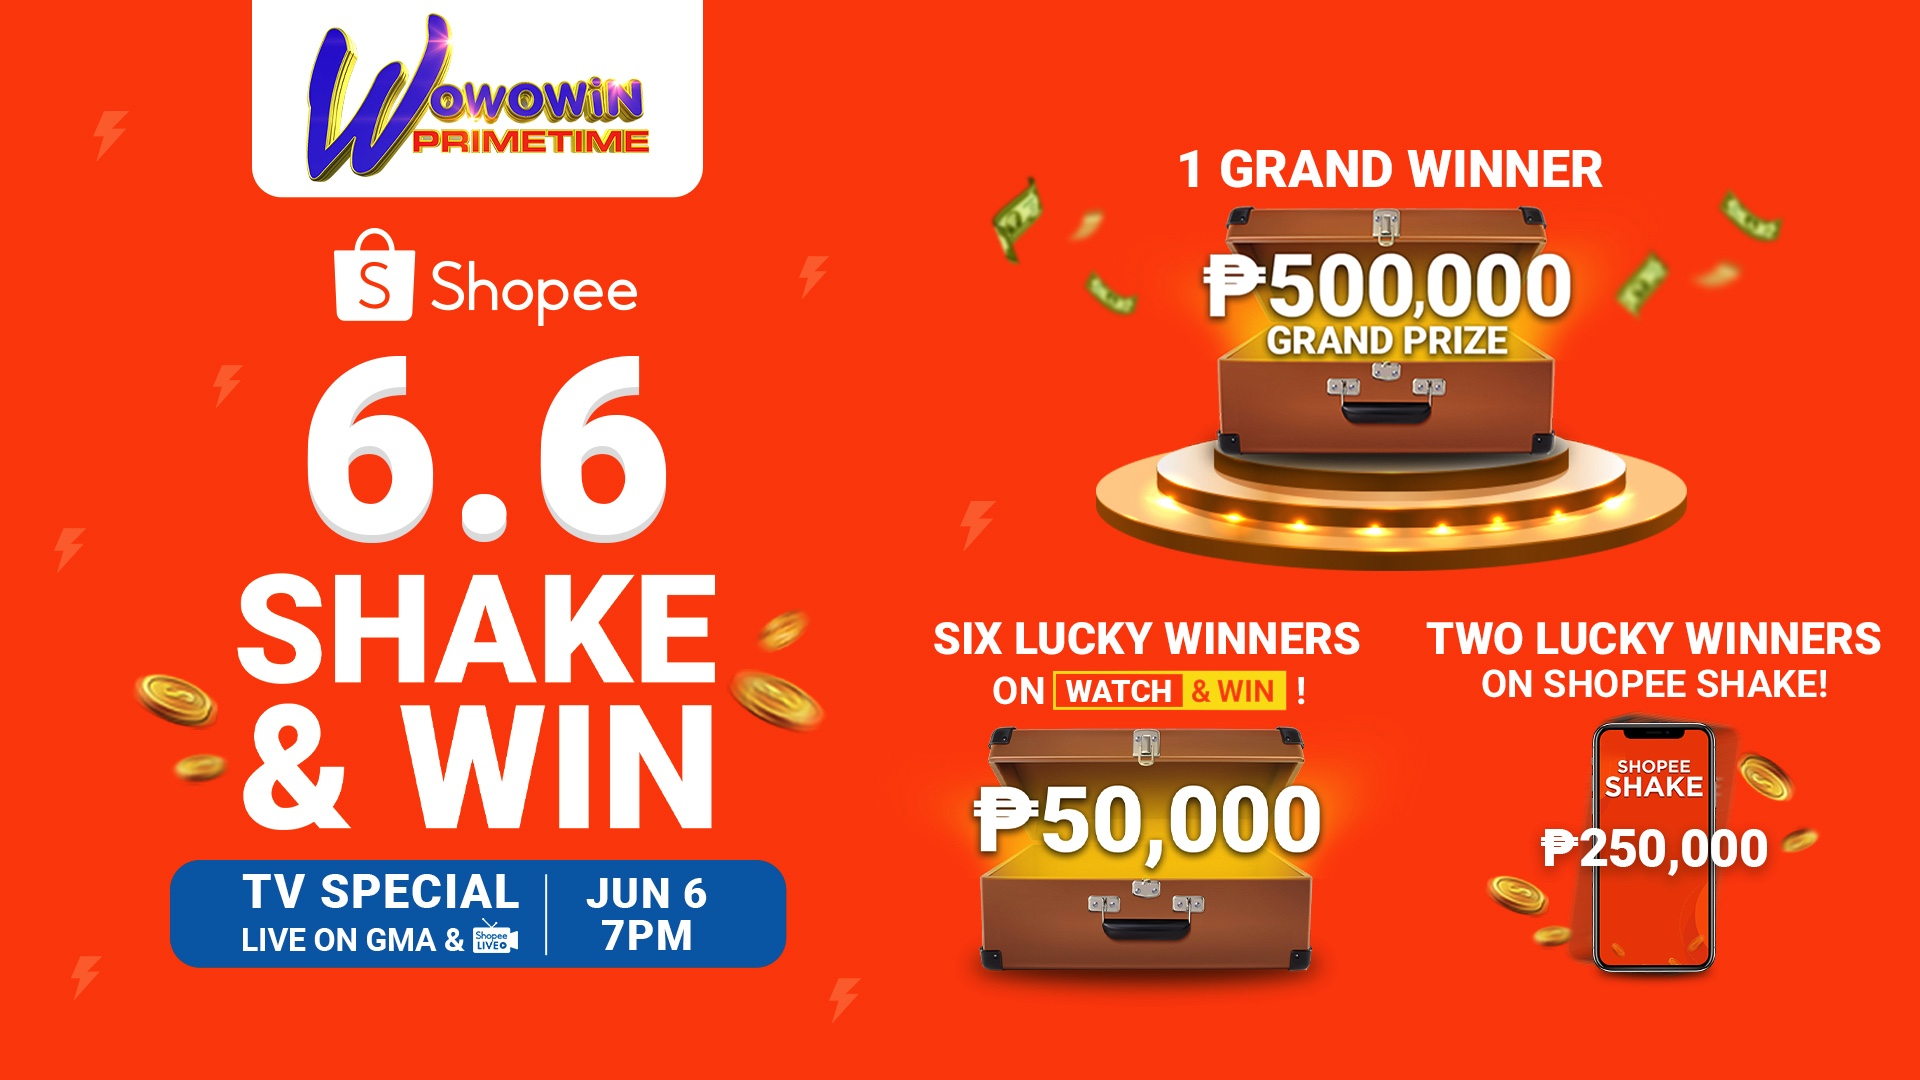 Shopee 6.6 Shake & Win TV Special